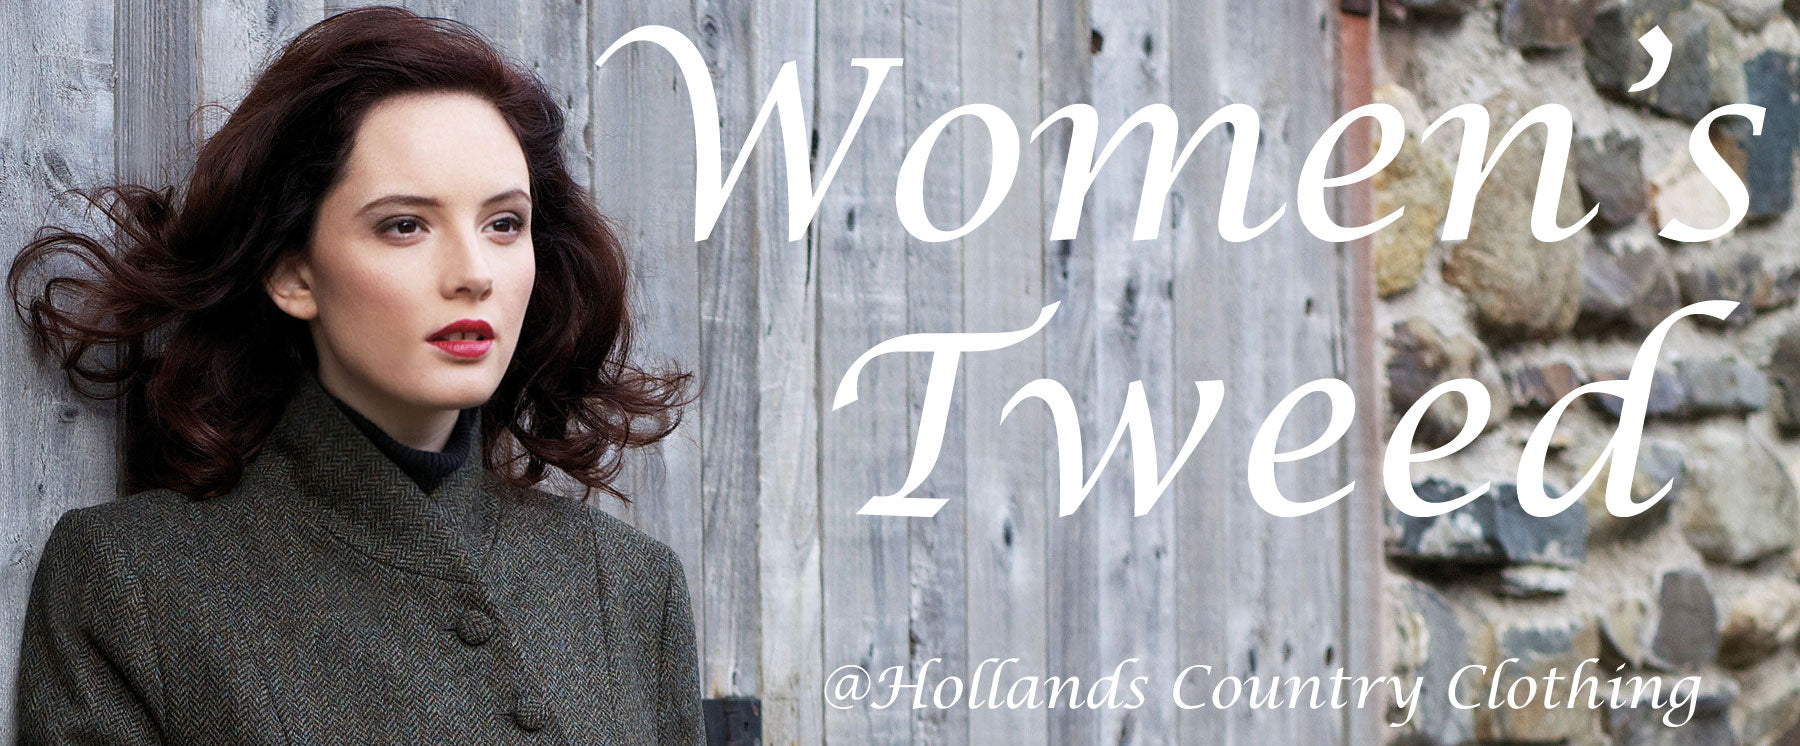 fca00909069dd A Collection of Traditional Country Style Women's Coats in Tweed and  Moleskin selected by Holland's Country Clothing for all aspects of country  living.